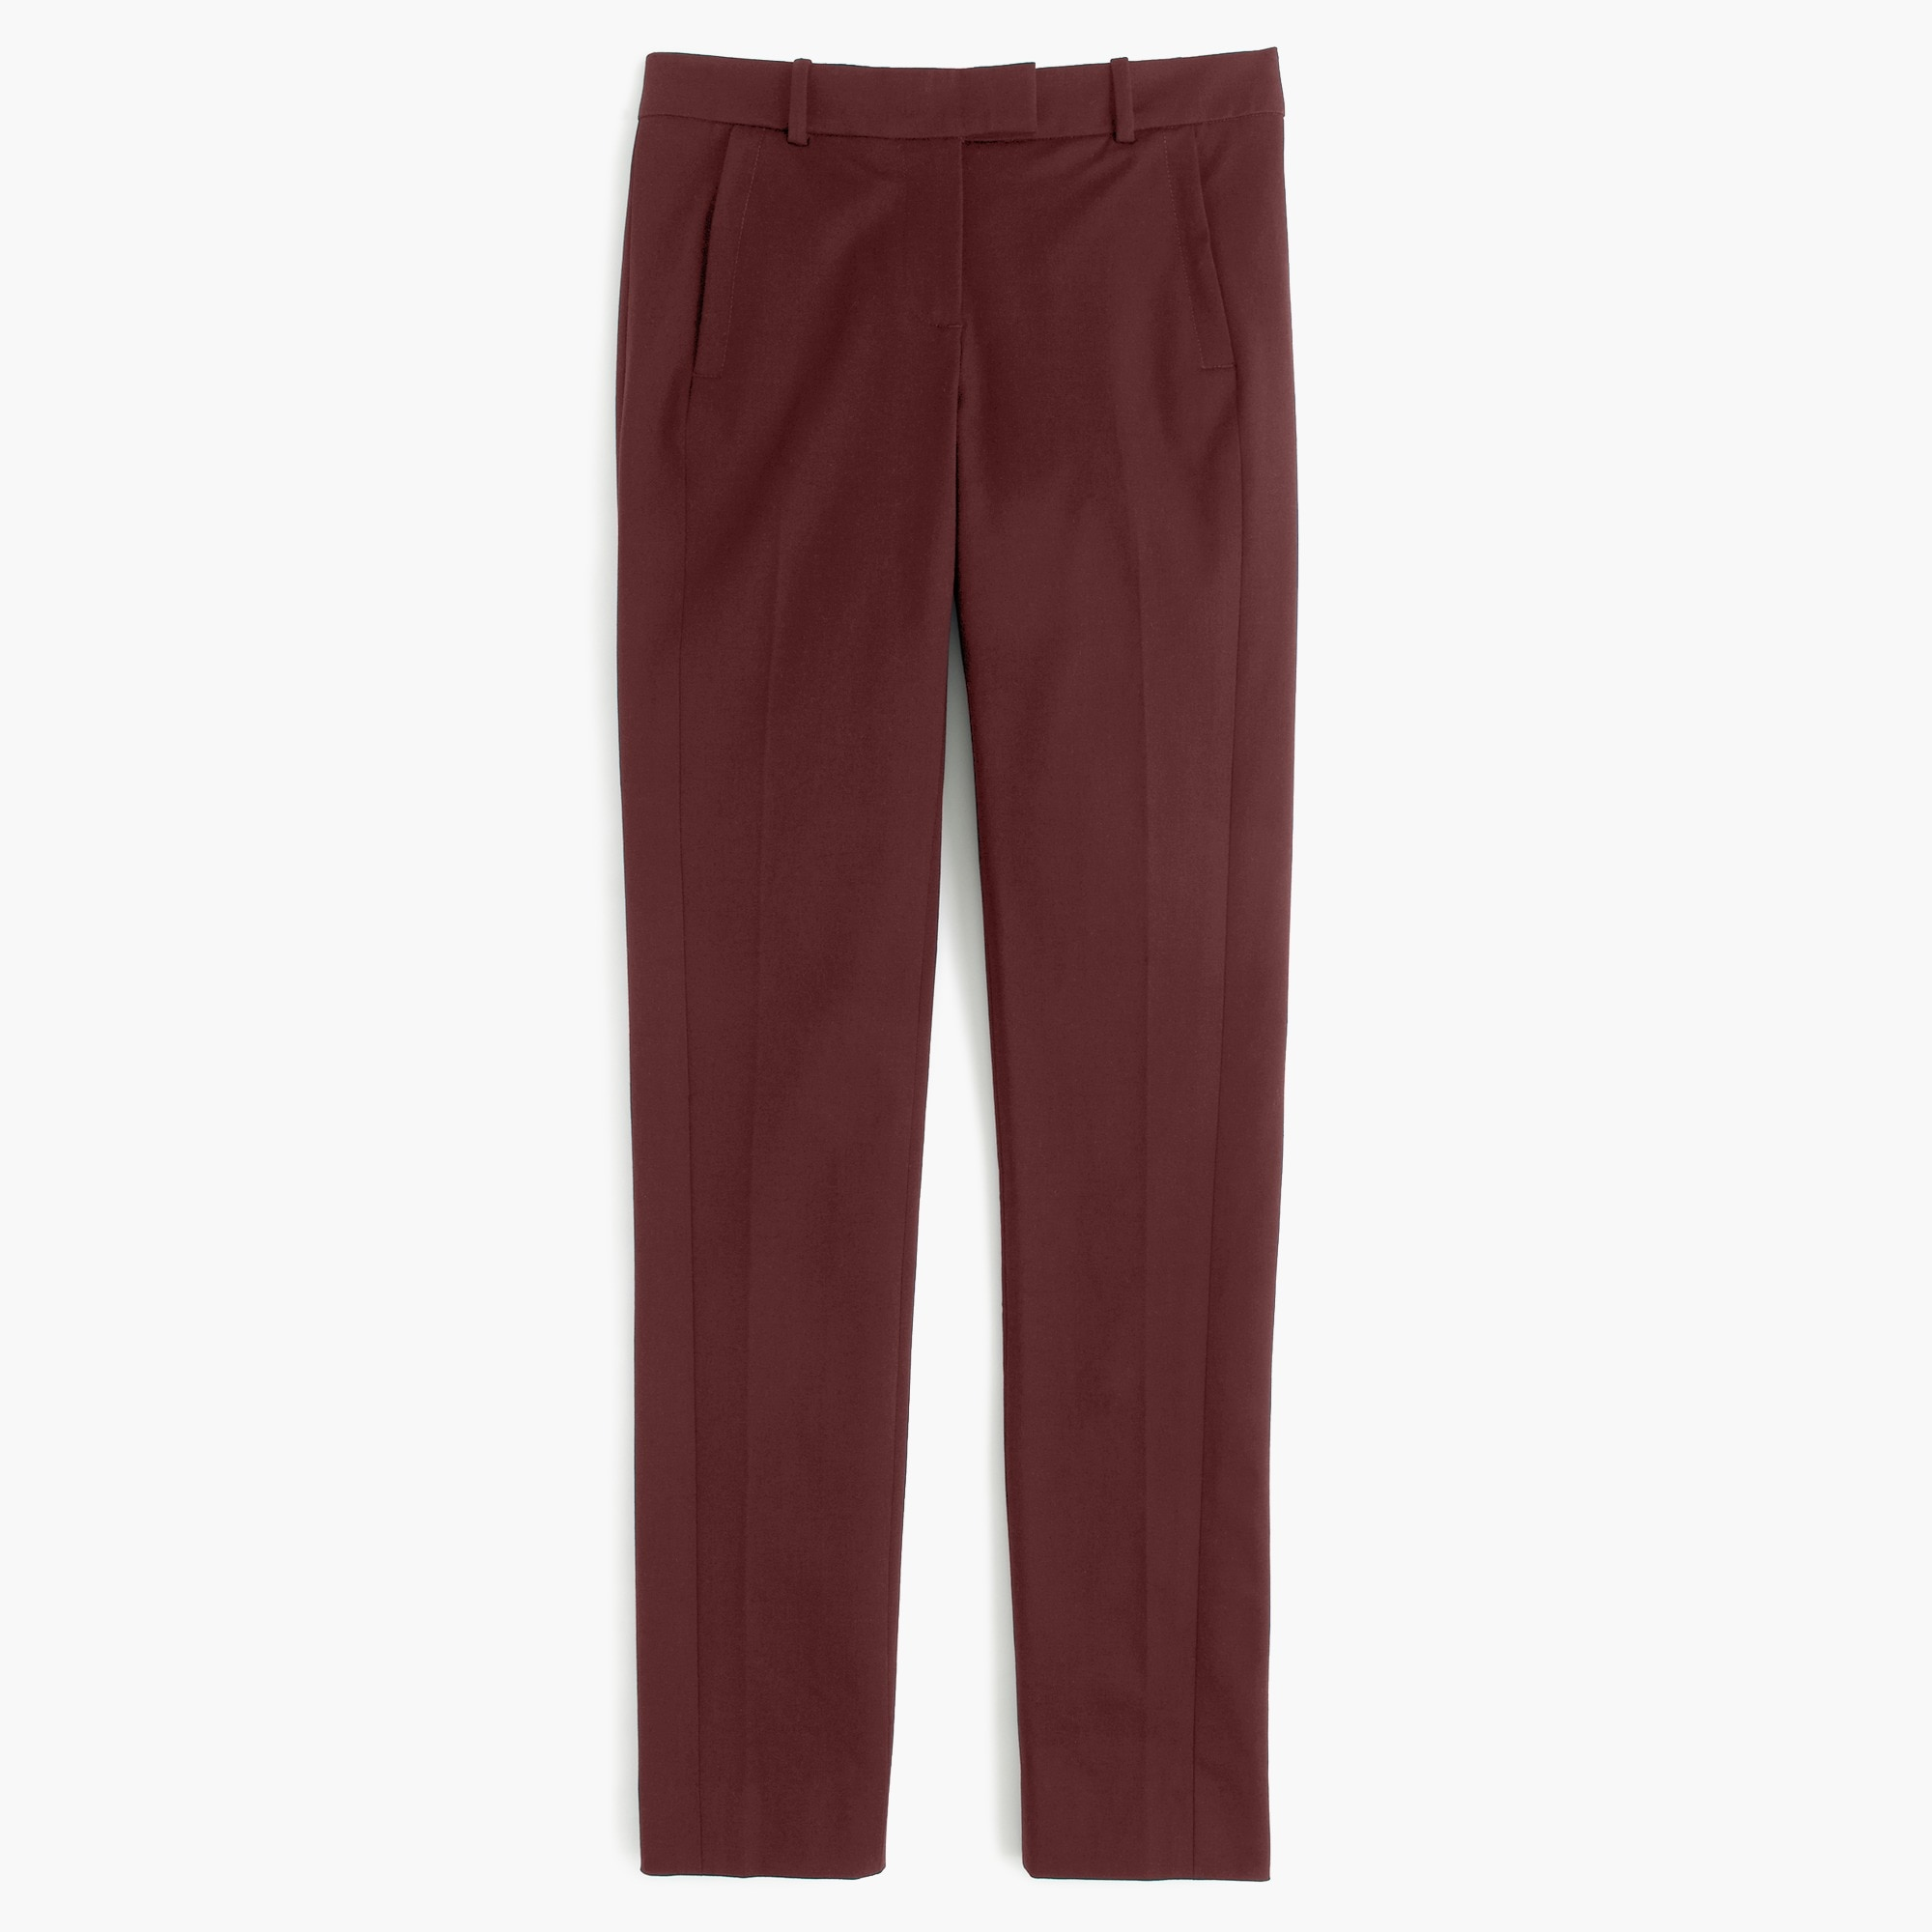 Image 1 for Tall Maddie pant in two-way stretch cotton